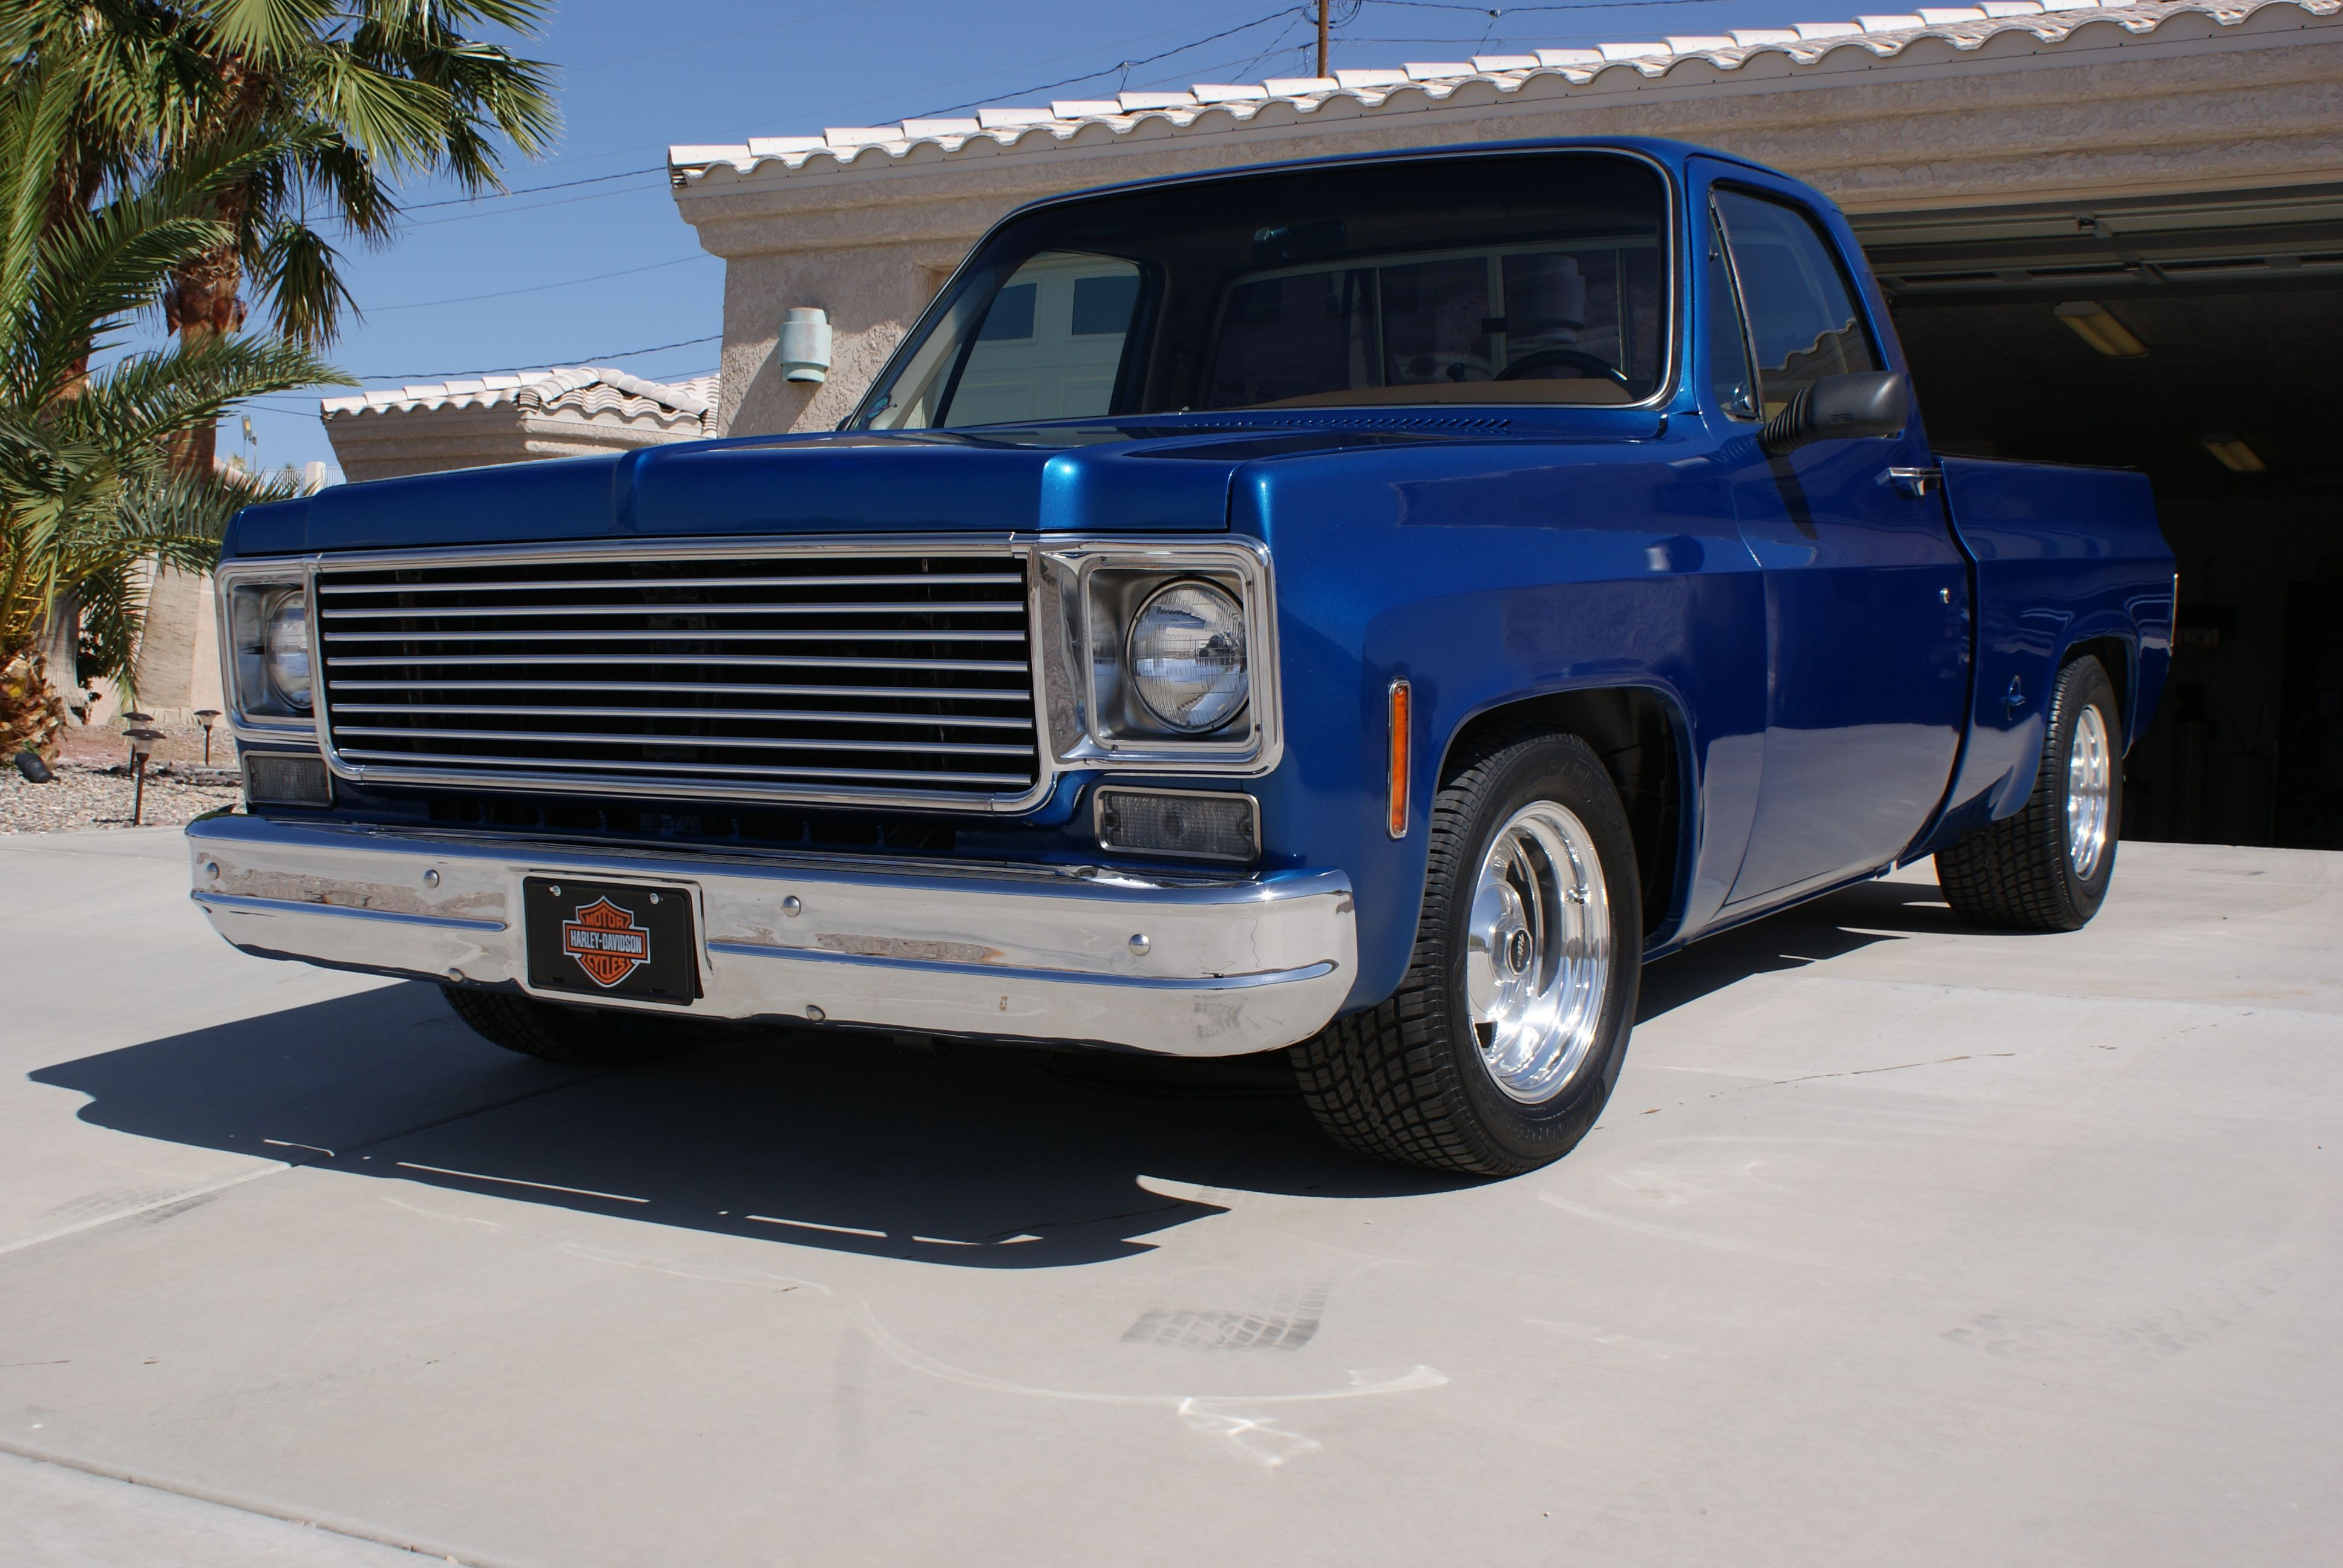 medium resolution of 1978 chevy c10 autotrader classics 1978 chevrolet c10 truck blue 8 cylinder